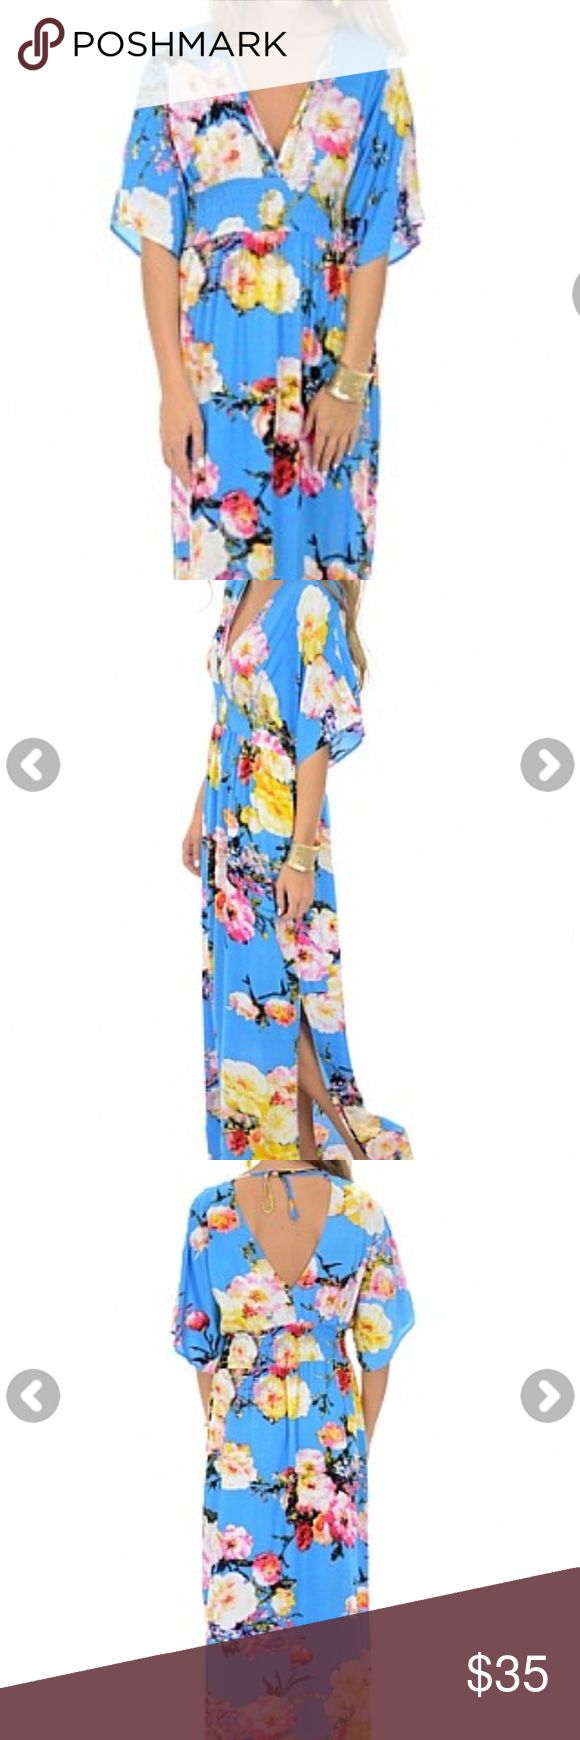 Aqua Pop Maxi Dress Adorable flutter sleeve maxi. Easy fit the blue door boutique Dresses Maxi